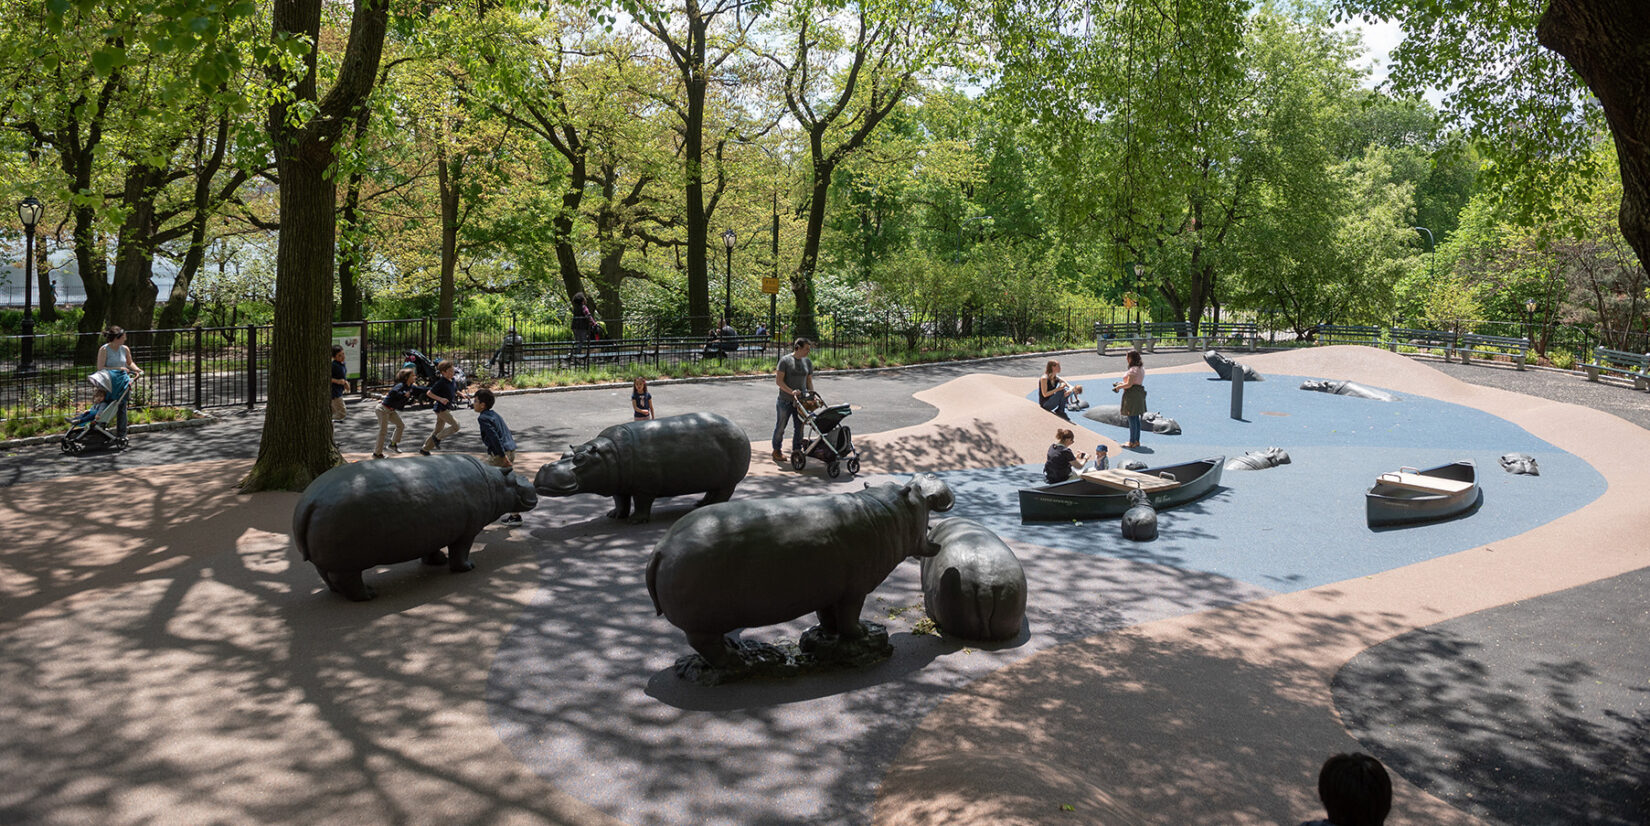 A long view of the playground, with children enjoying the hippos and simulated water area